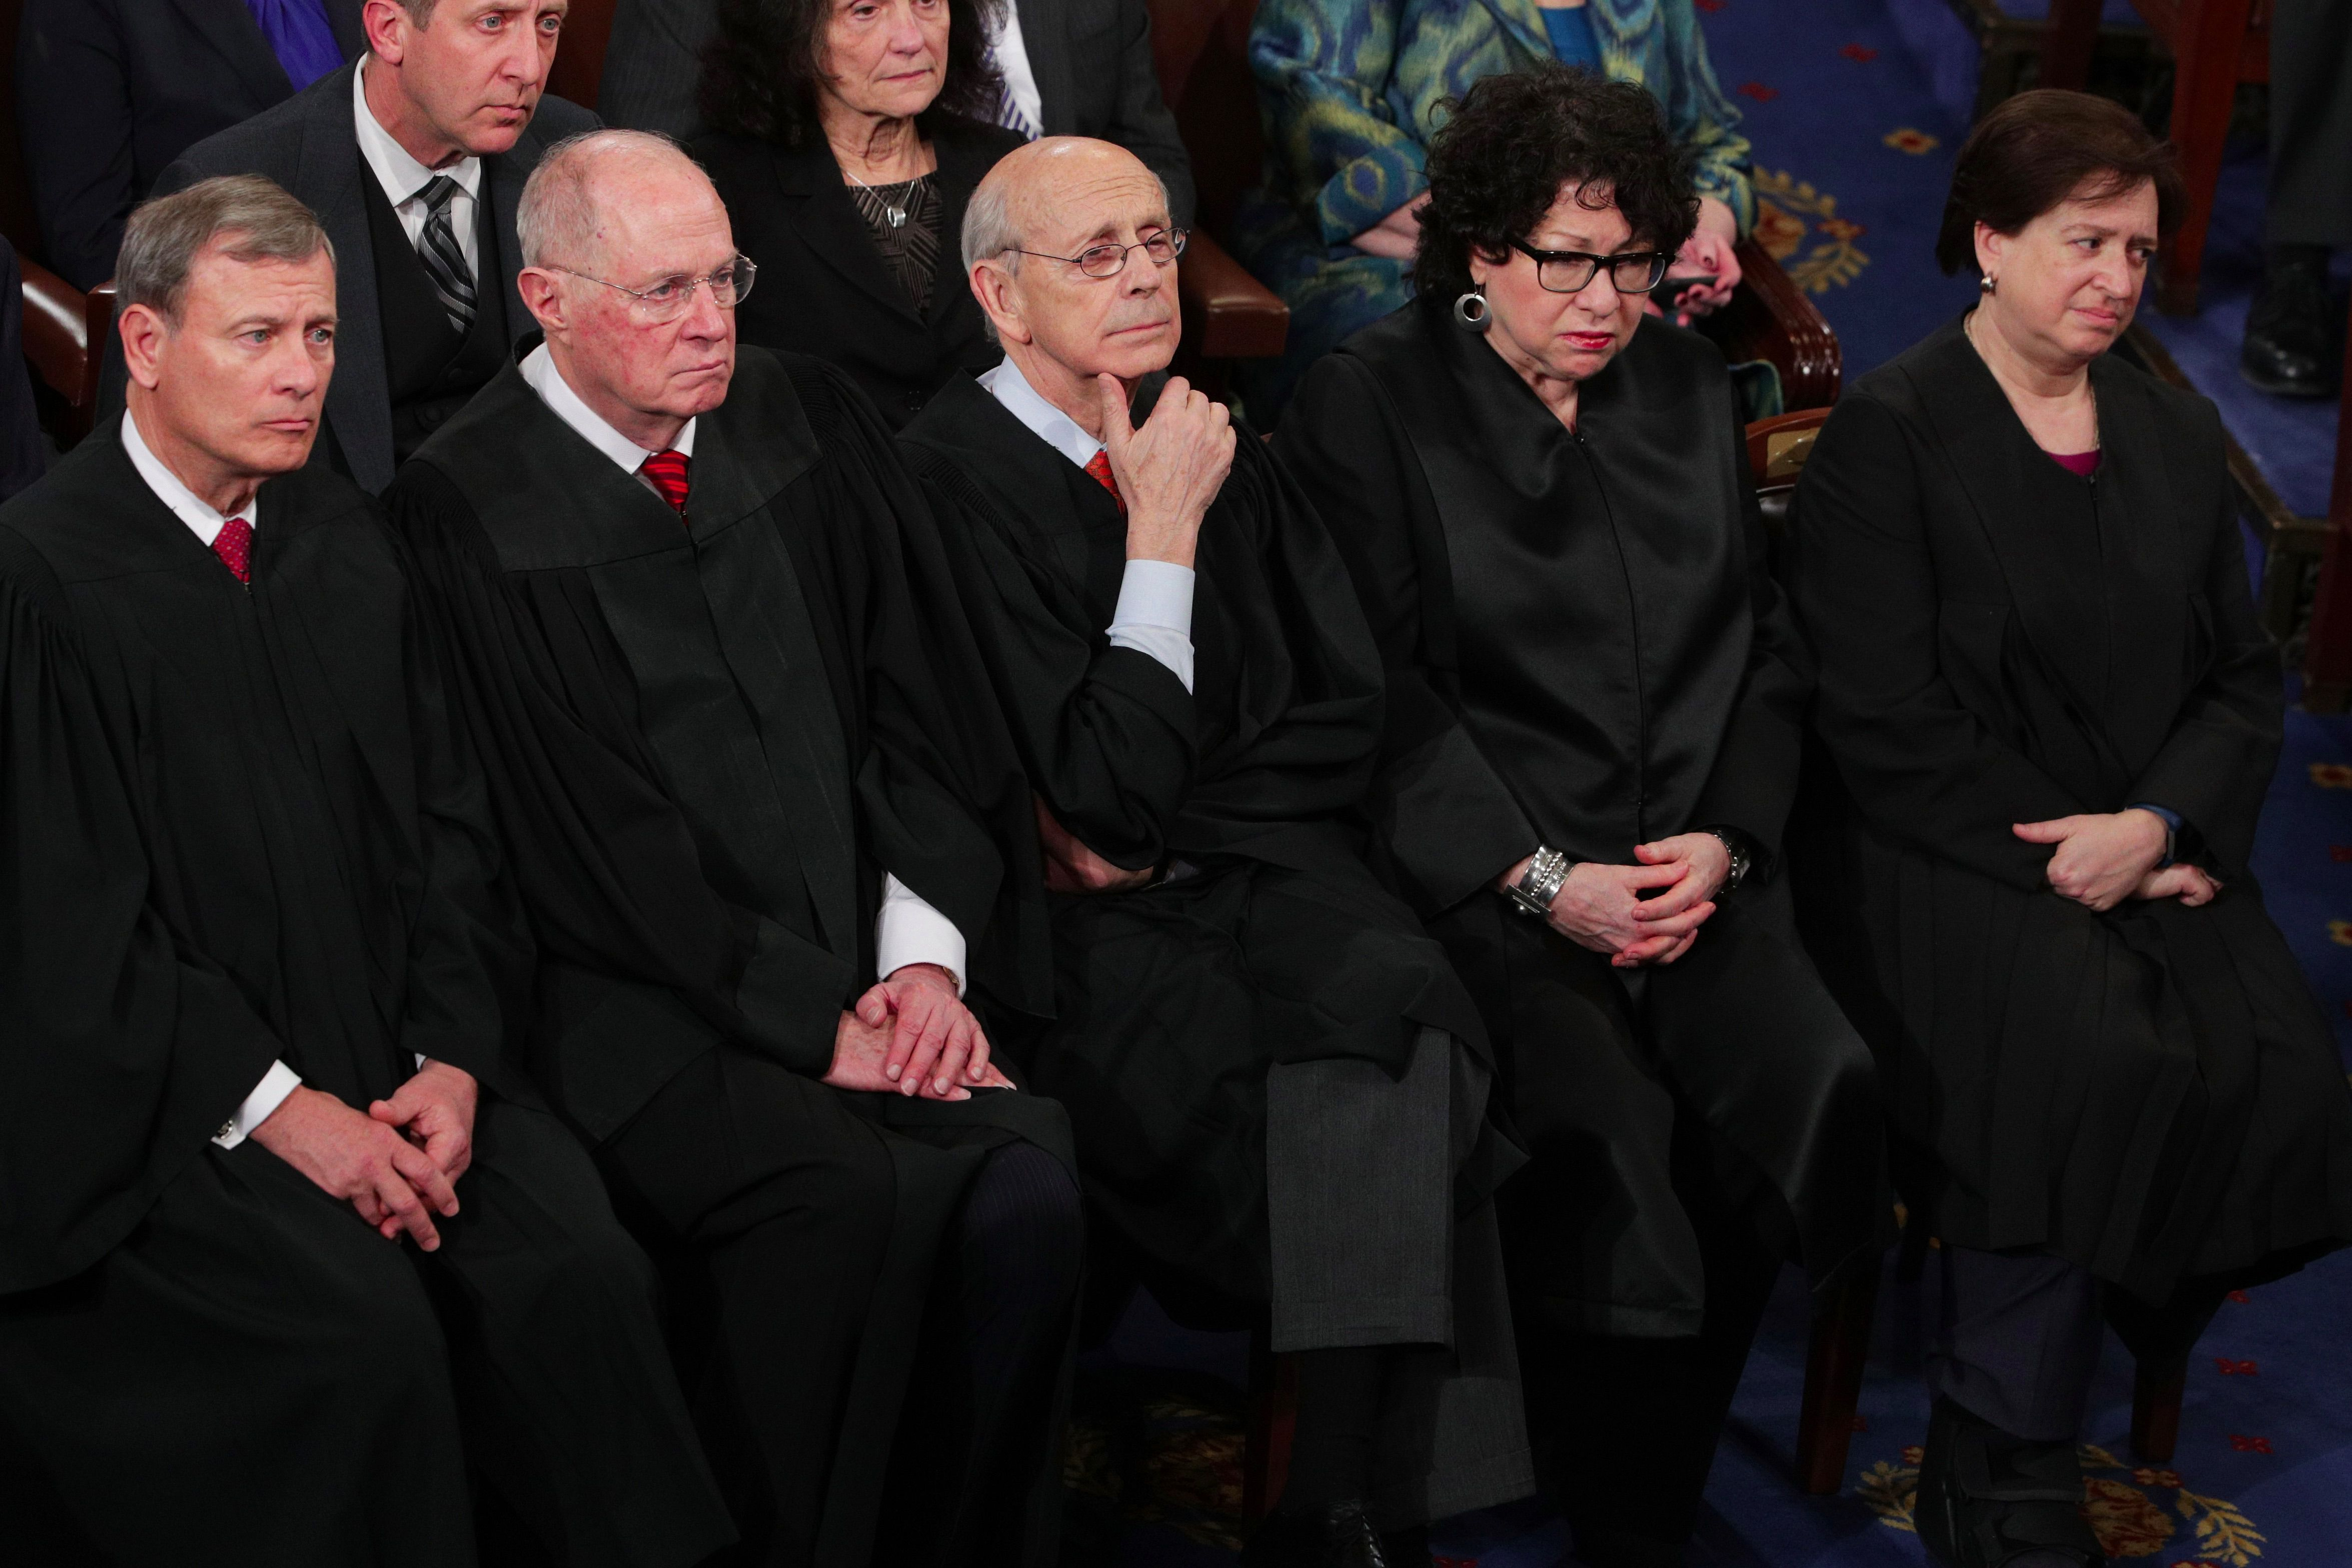 Supreme Court Justices listening to President Trump.